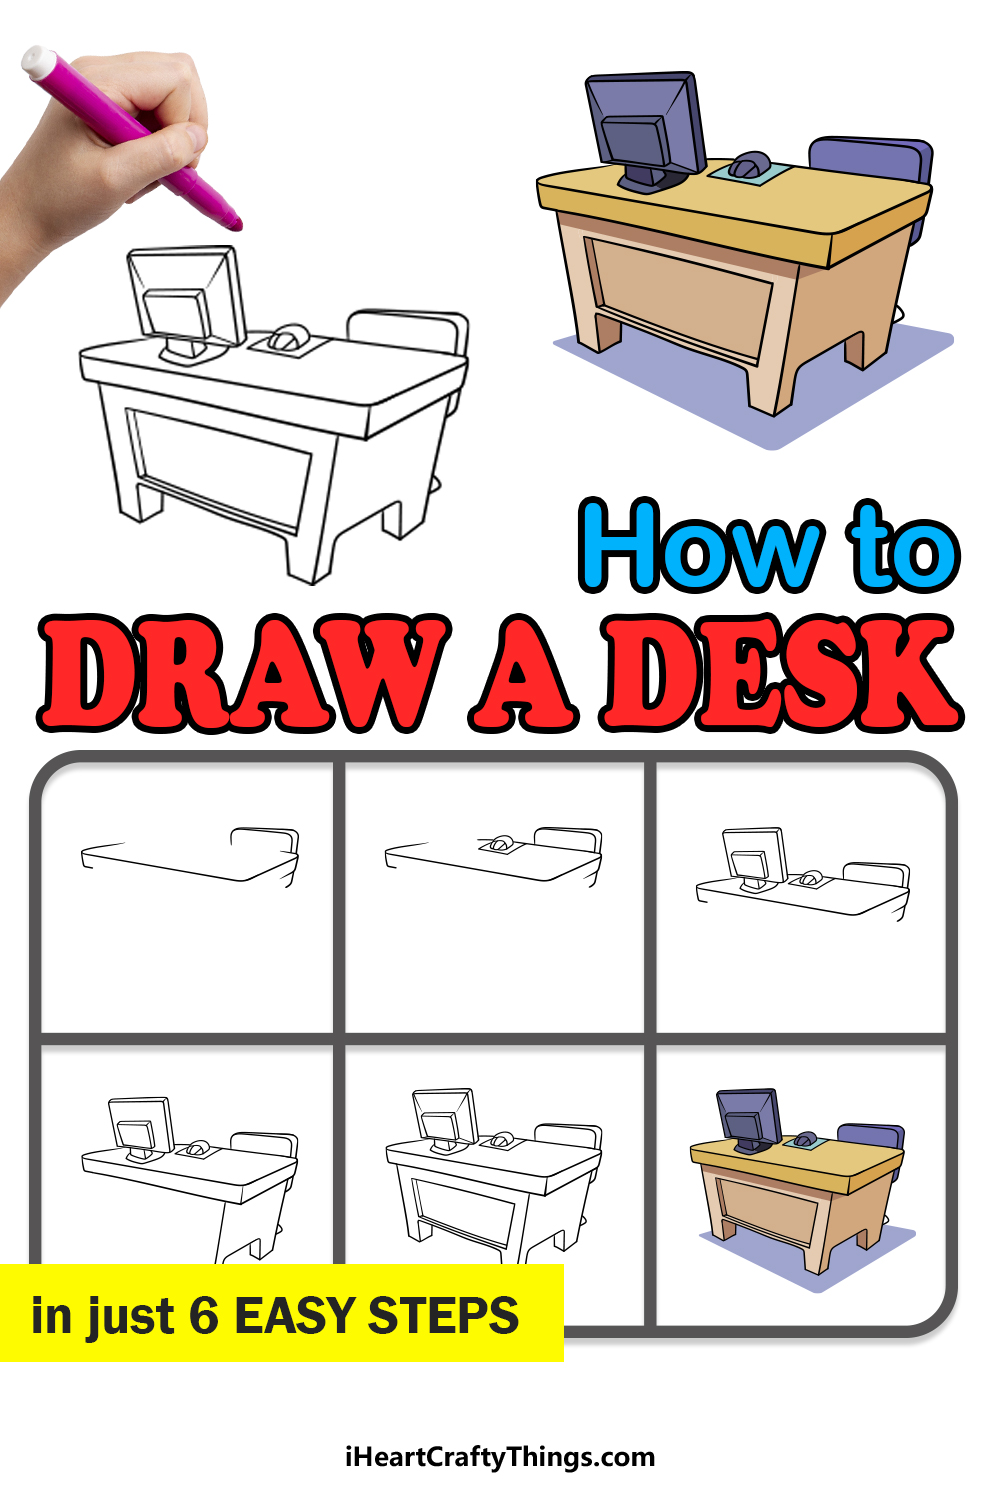 how to draw a desk in 6 easy steps